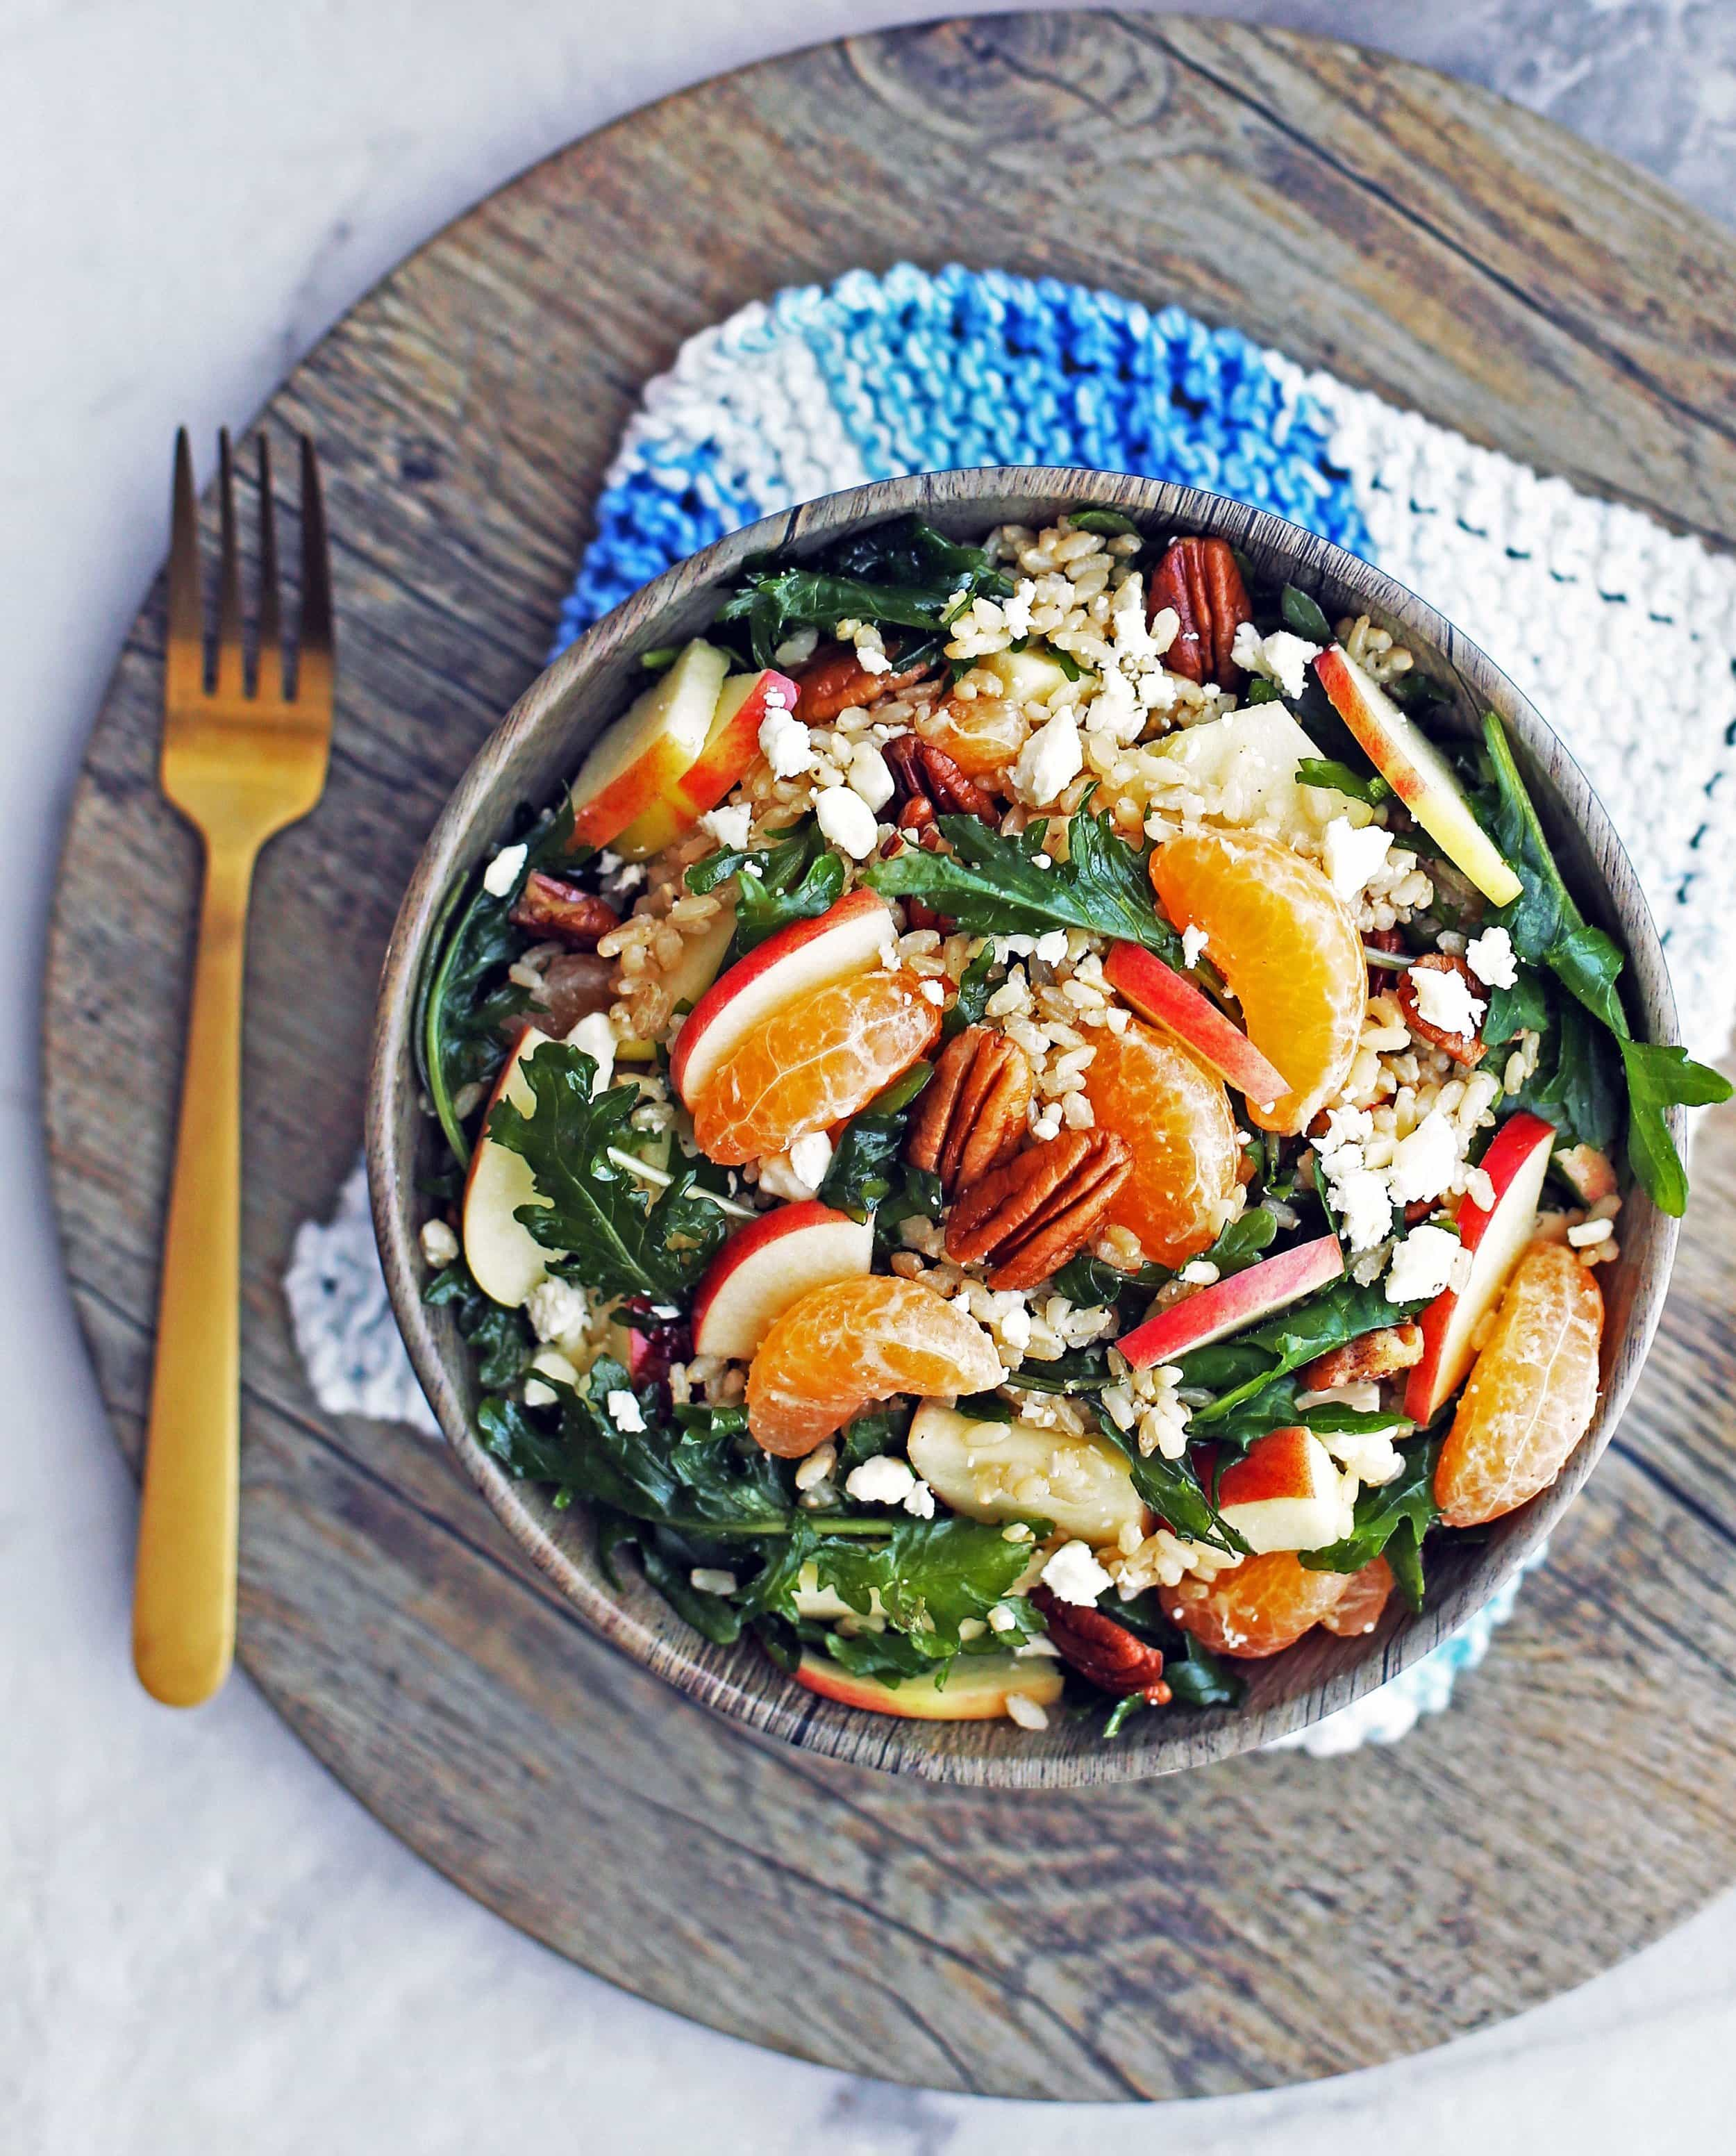 Baby Kale and Brown Rice Salad with Feta and Clementines